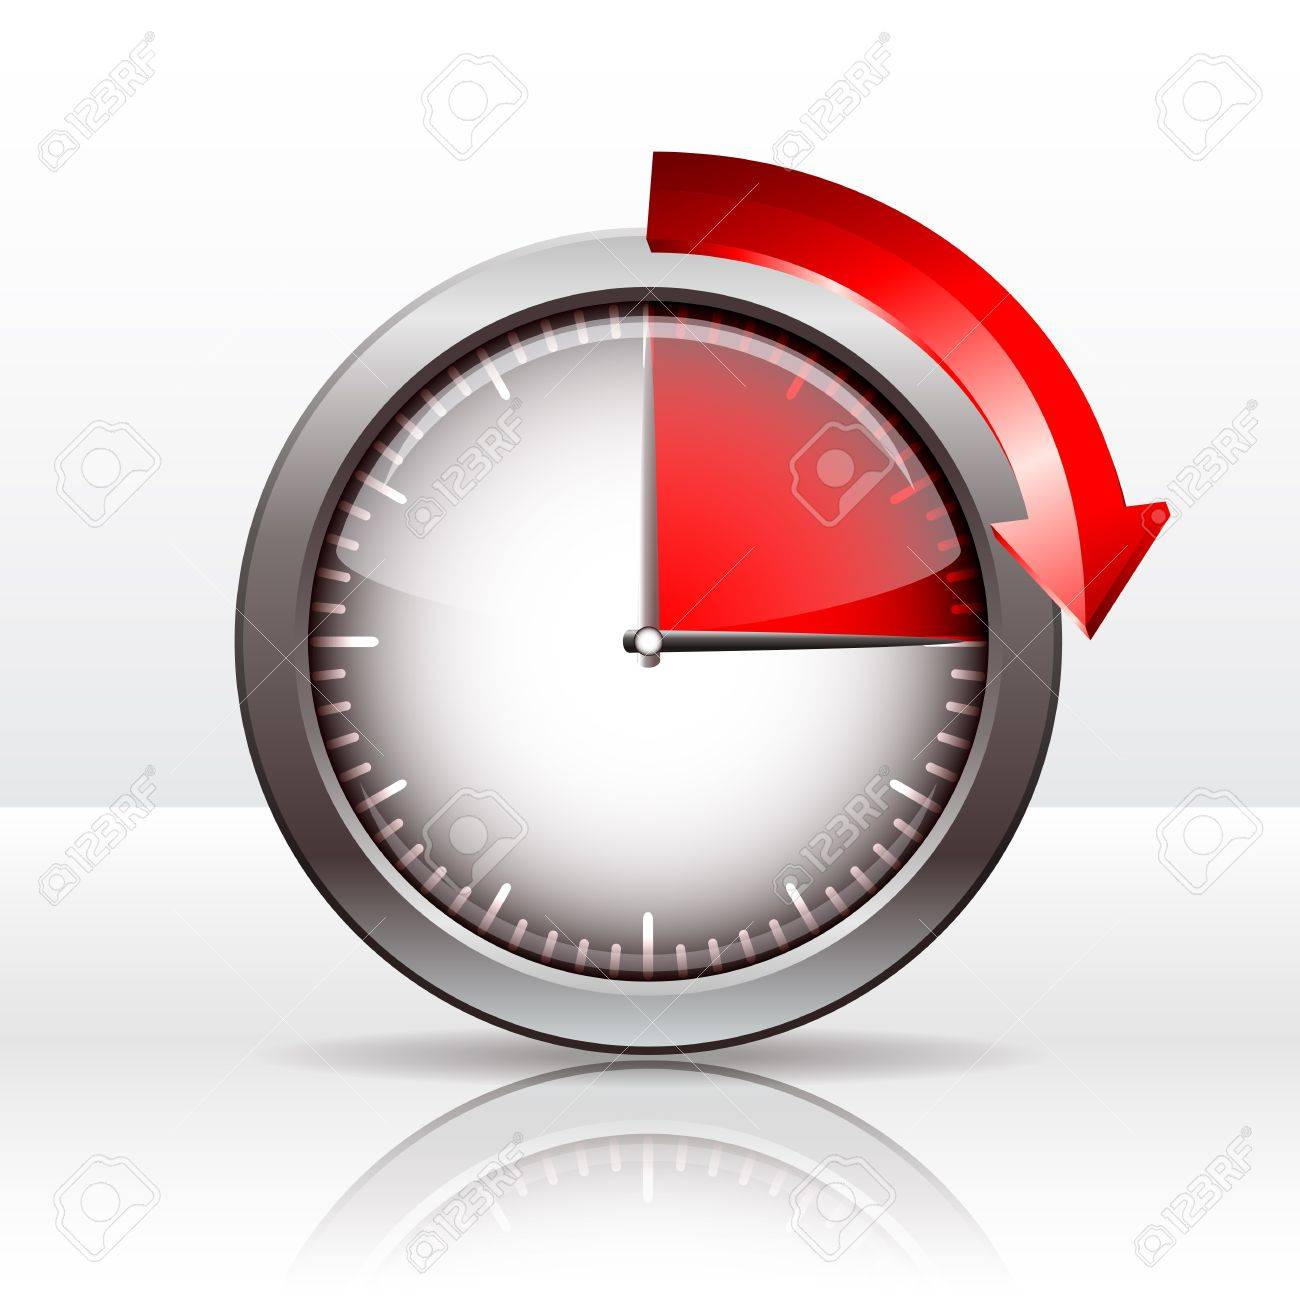 timer clock 15 minutes vector illustration royalty free cliparts